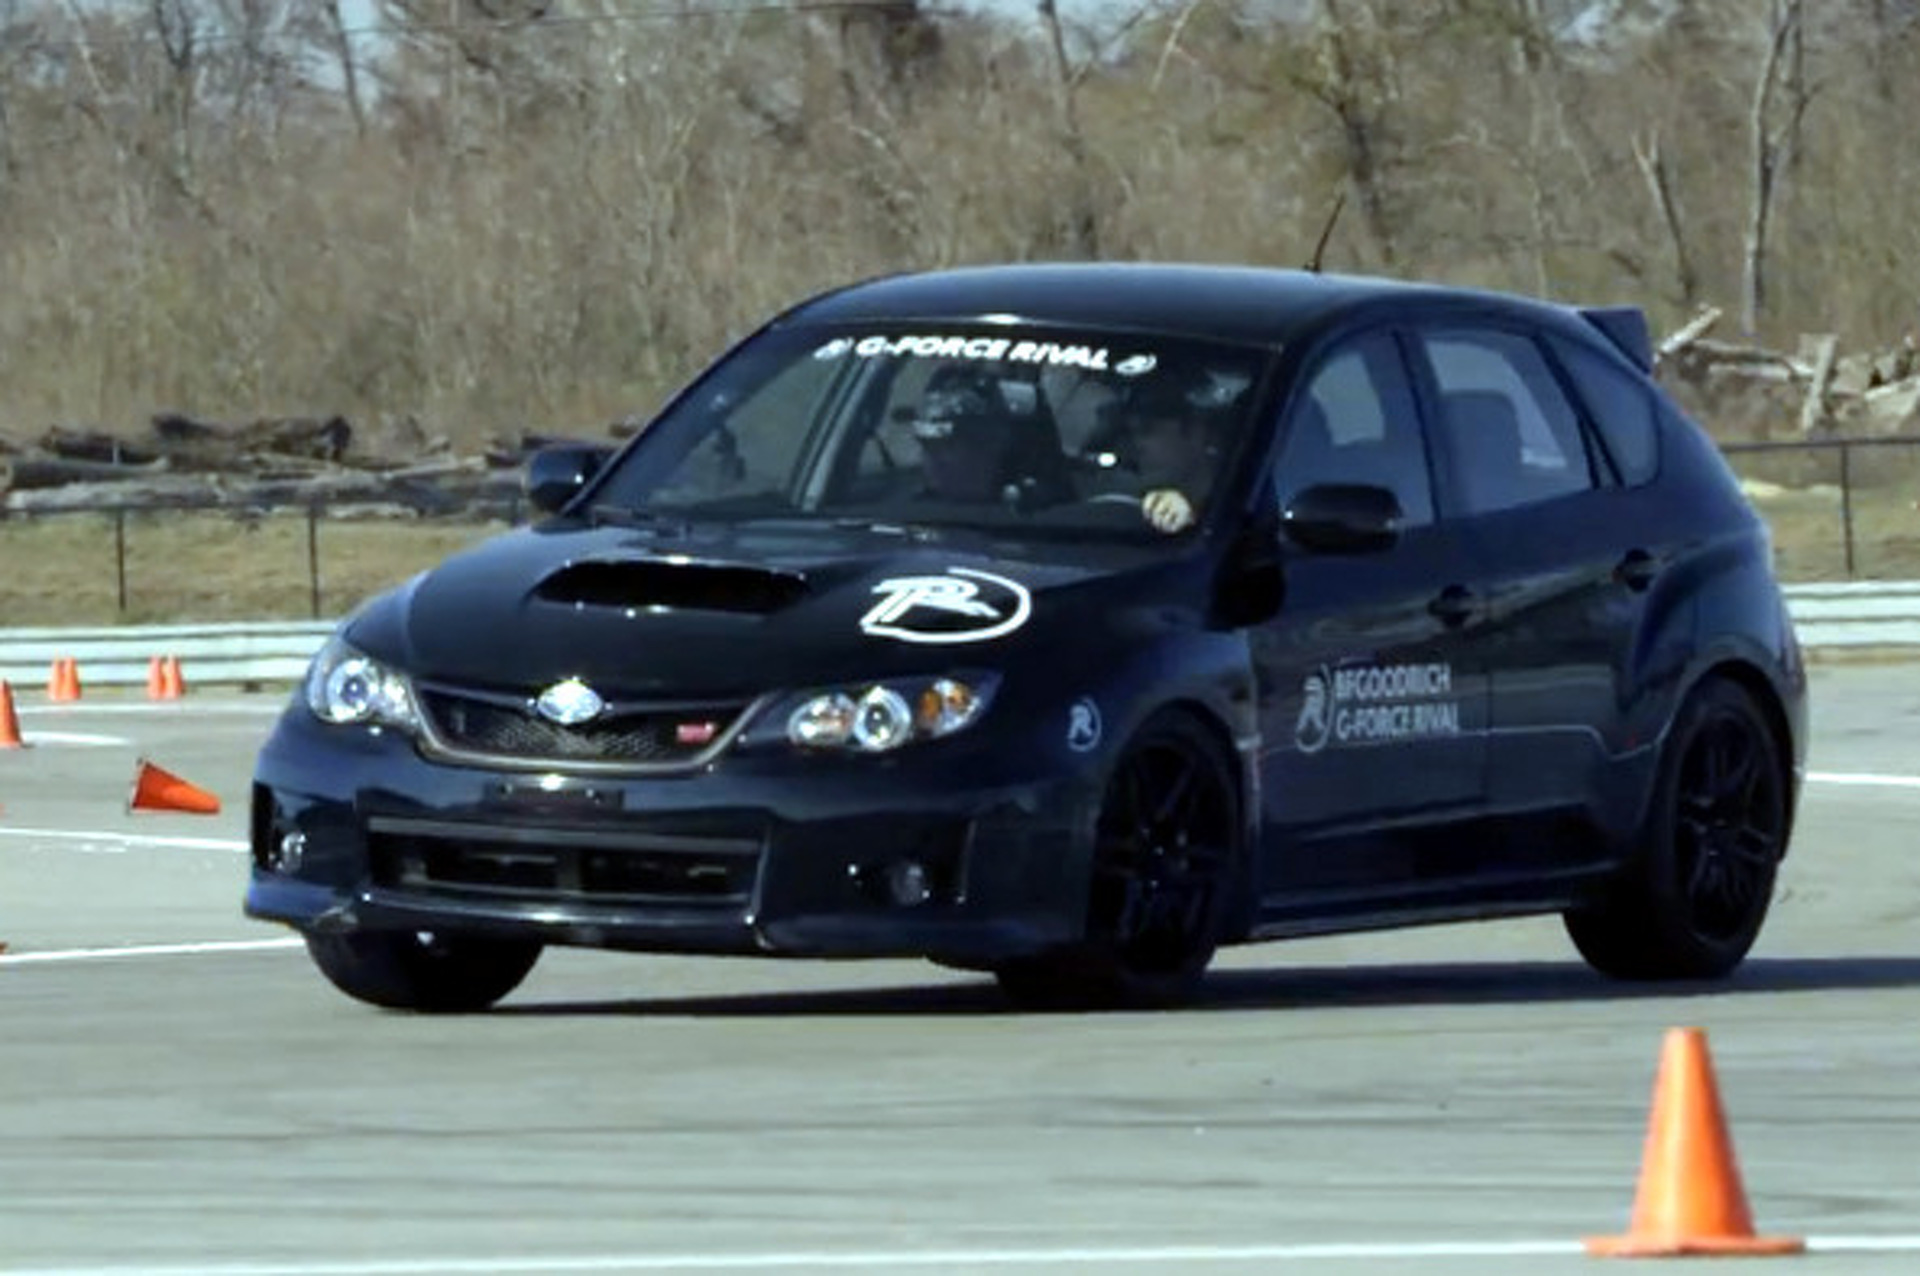 Video: BF Goodrich Tires, as Tested by SCCA Drivers